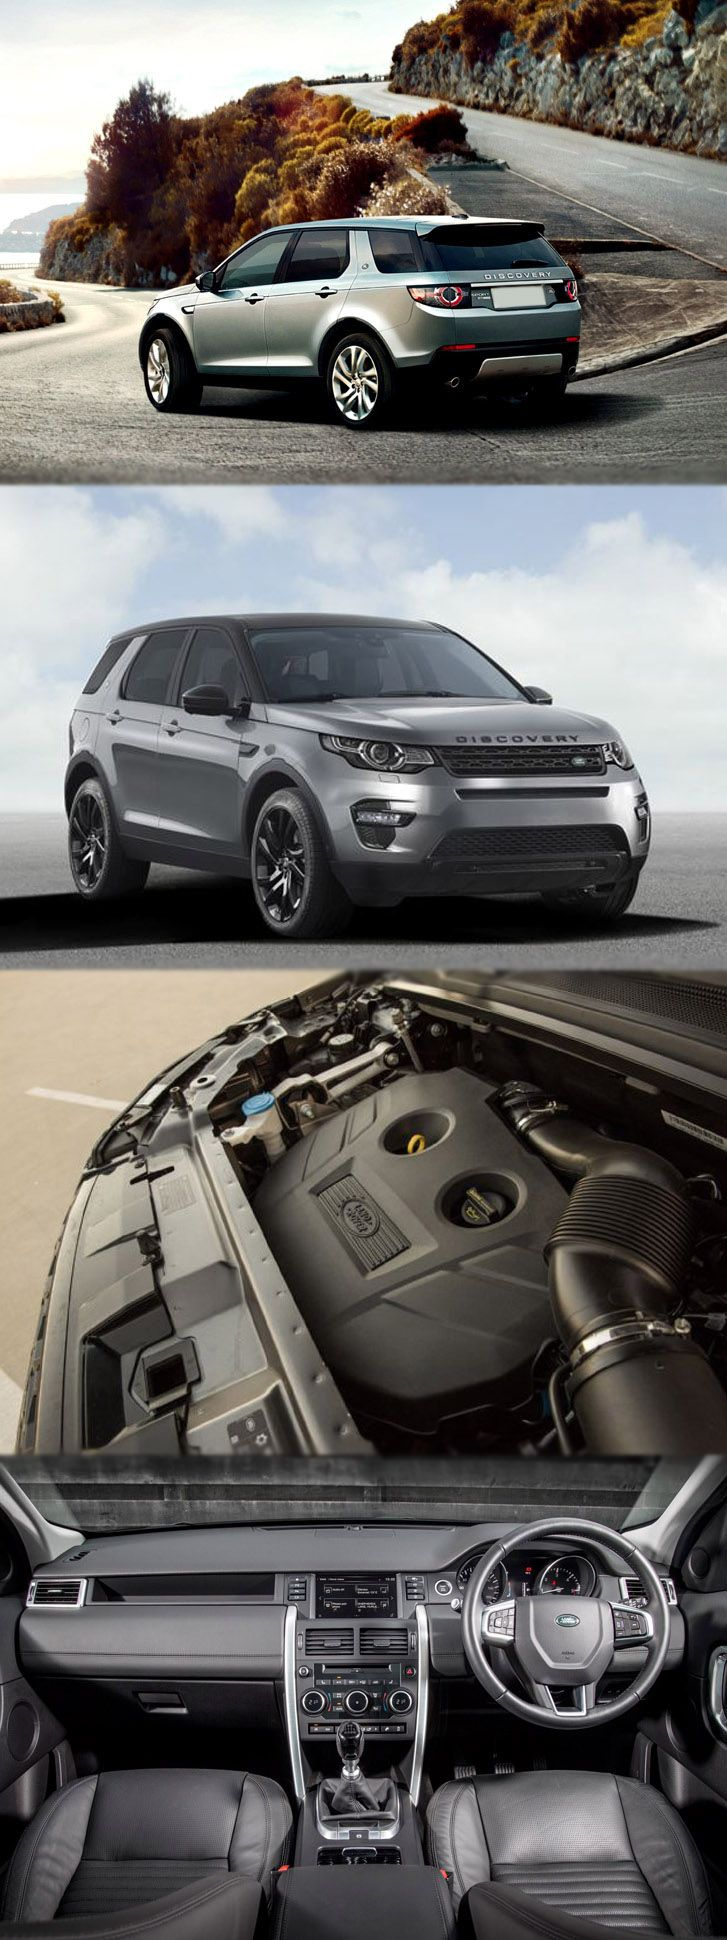 A BIG SPLASH BY THE NEW LAND #ROVER #DISCOVERY #SPORT For more detail:http://www.rangerovergearbox.co.uk/blog/a-big-splash-by-the-new-land-rover-discovery-sport/